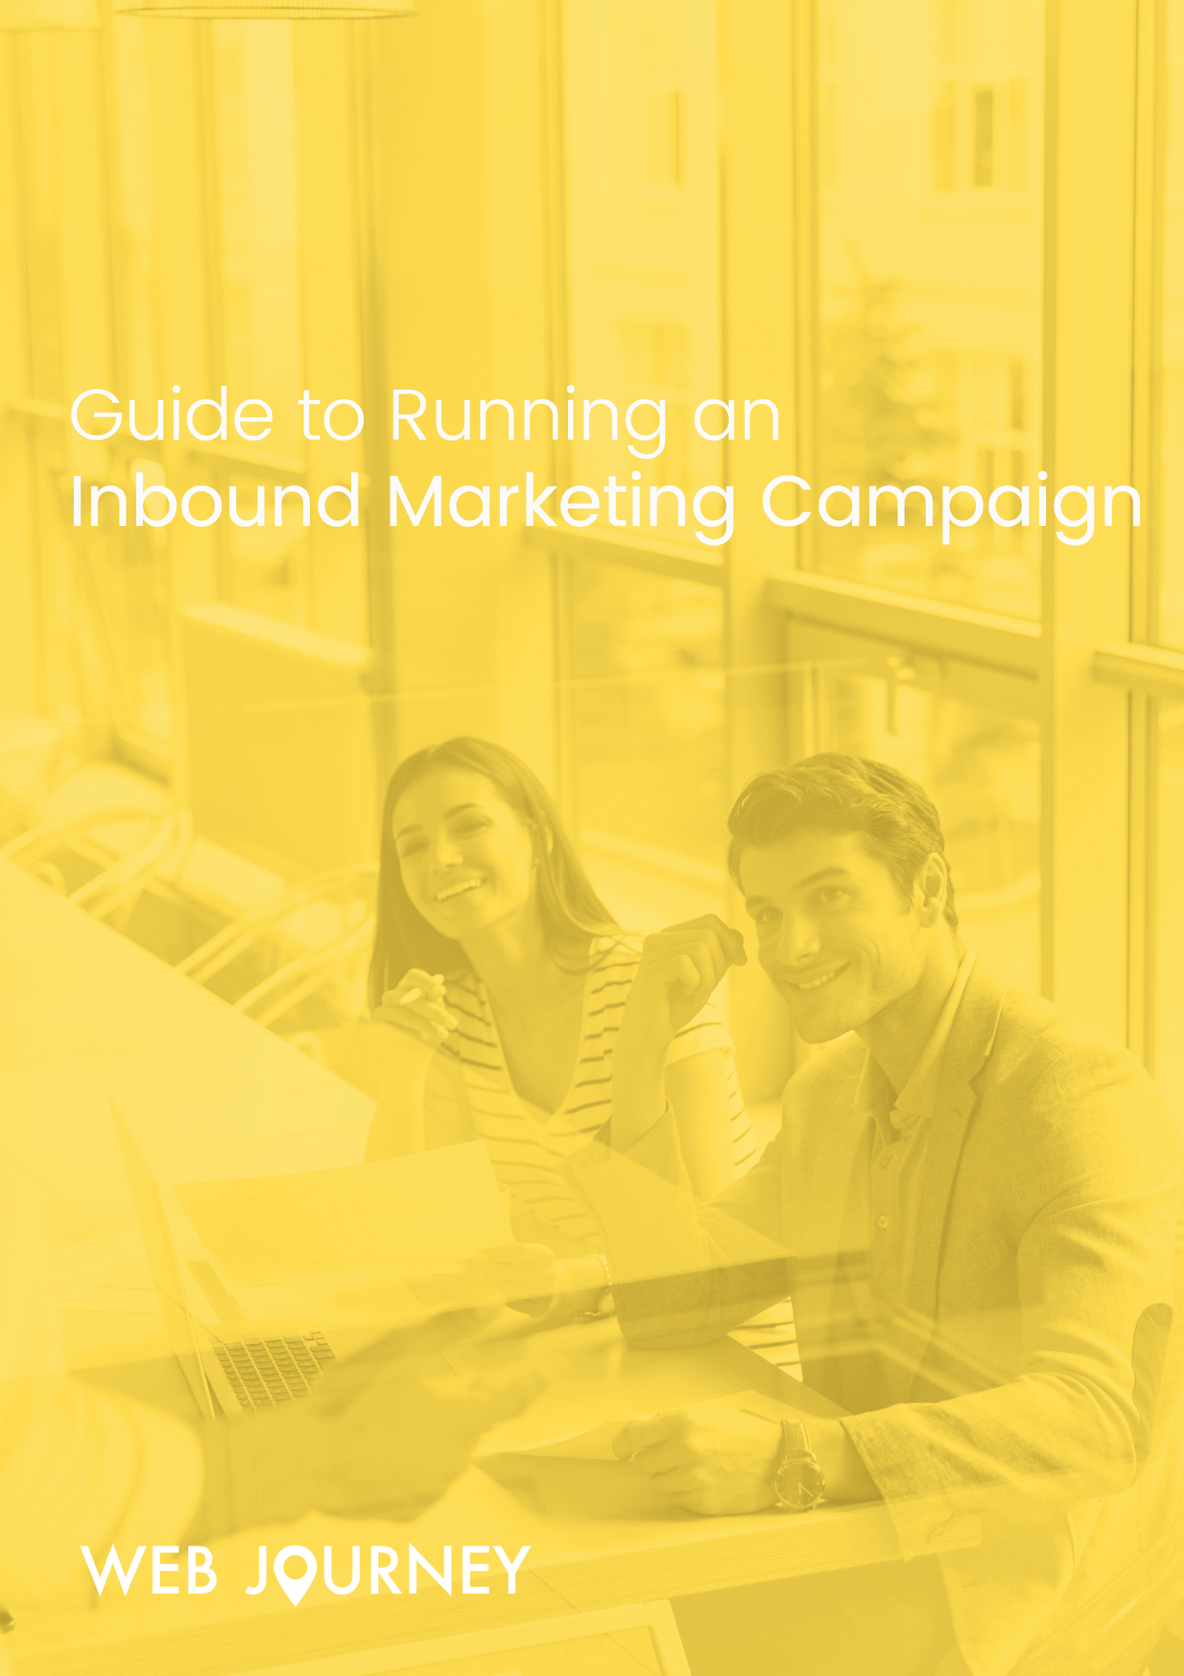 Guide to Running an Inbound Marketing Campaign - PDF Cover.png